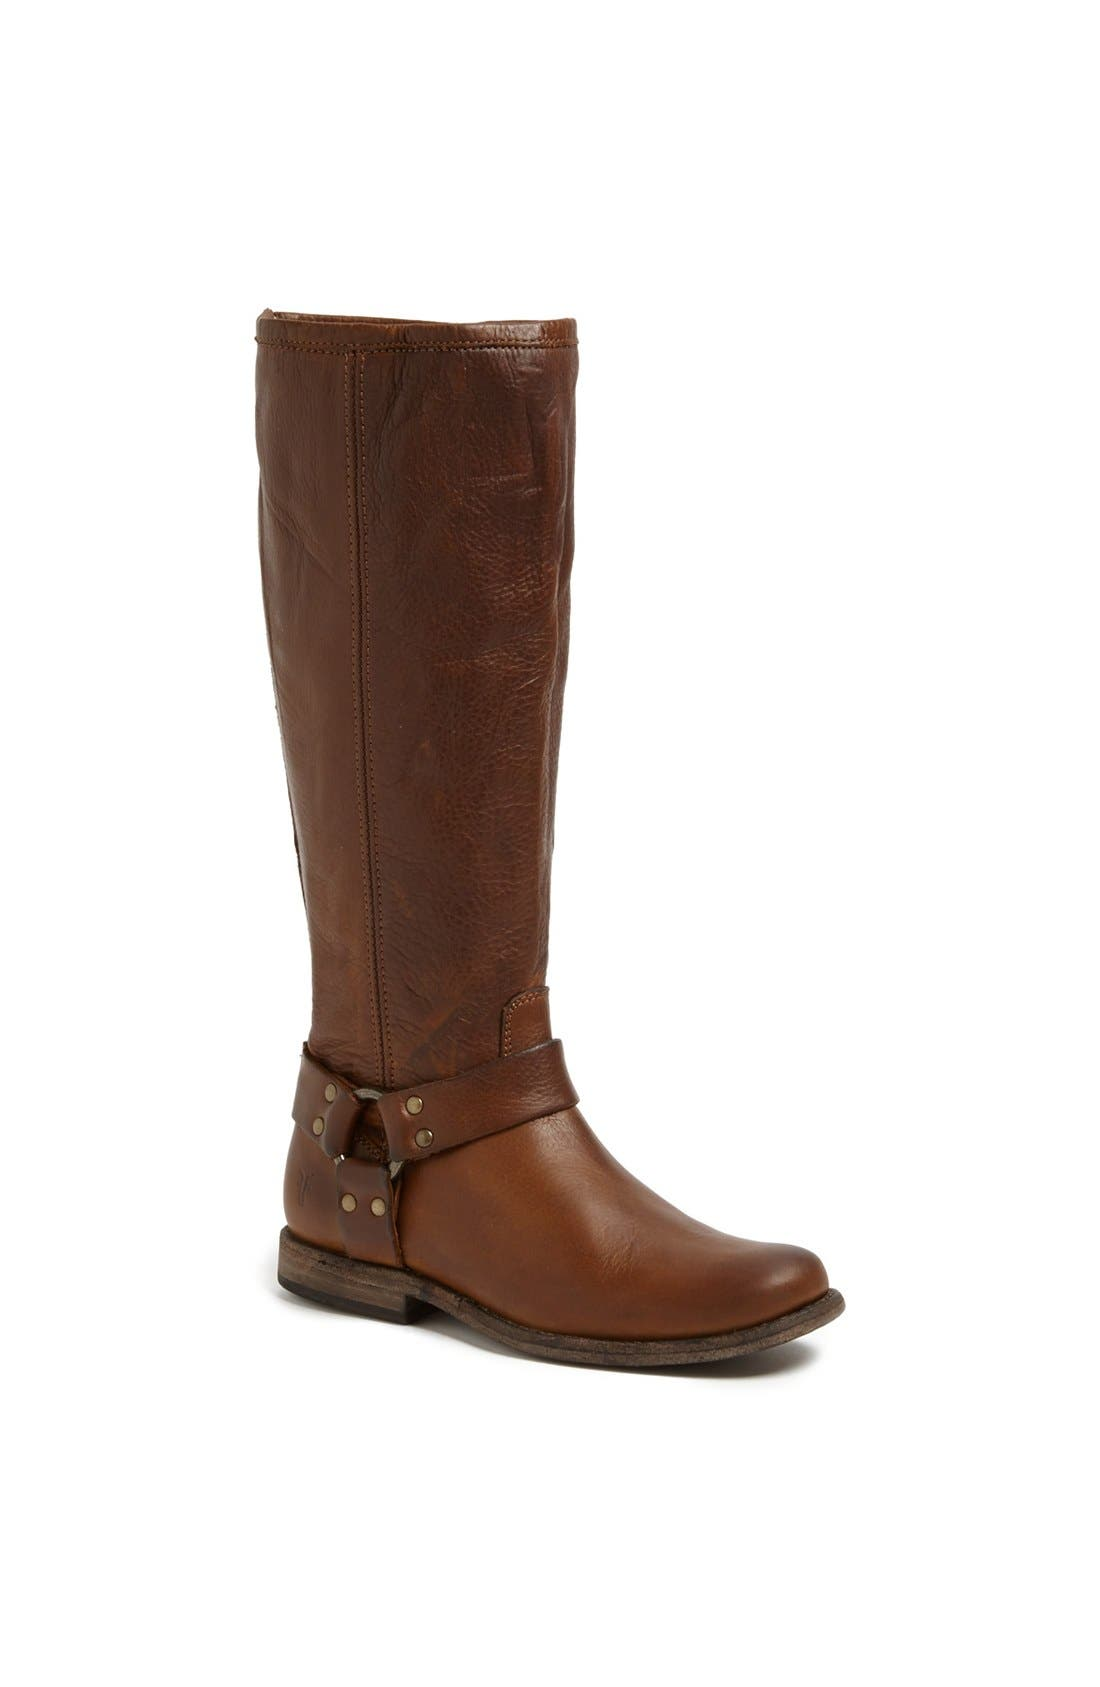 Main Image - Frye 'Phillip Harness' Tall Washed Leather Riding Boot (Wide Calf) (Women)